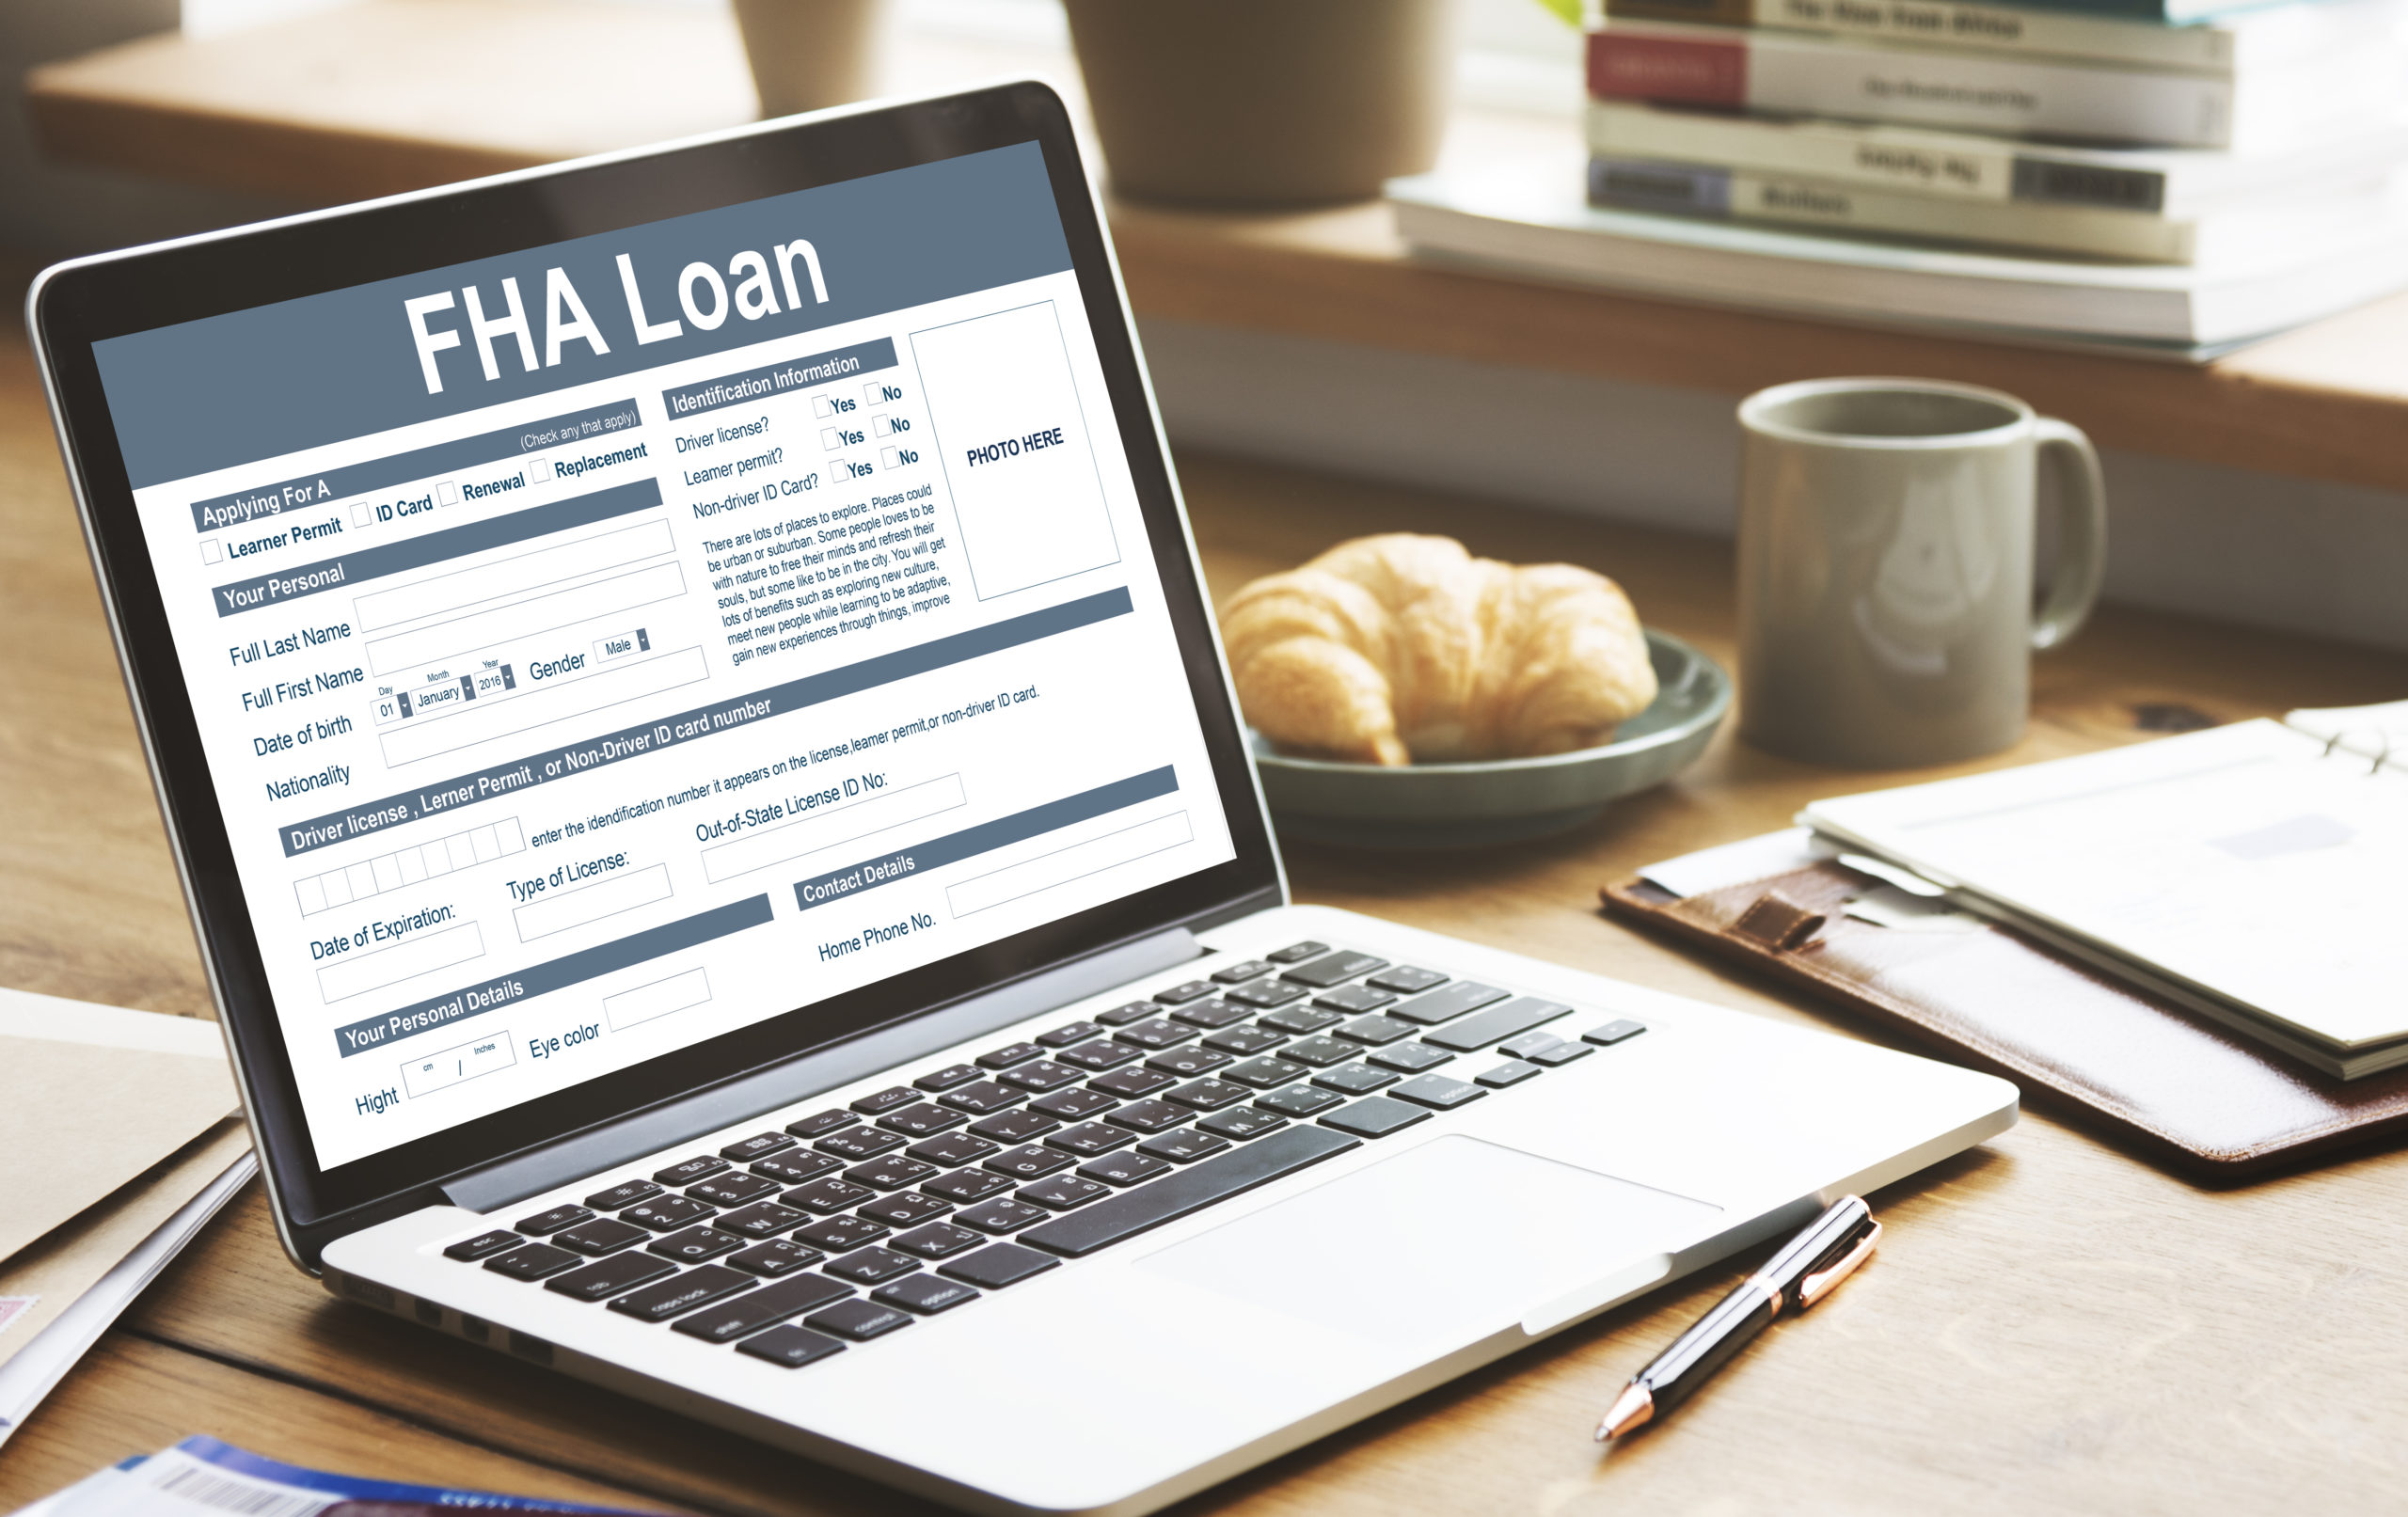 Using FHA loan to buy a condo